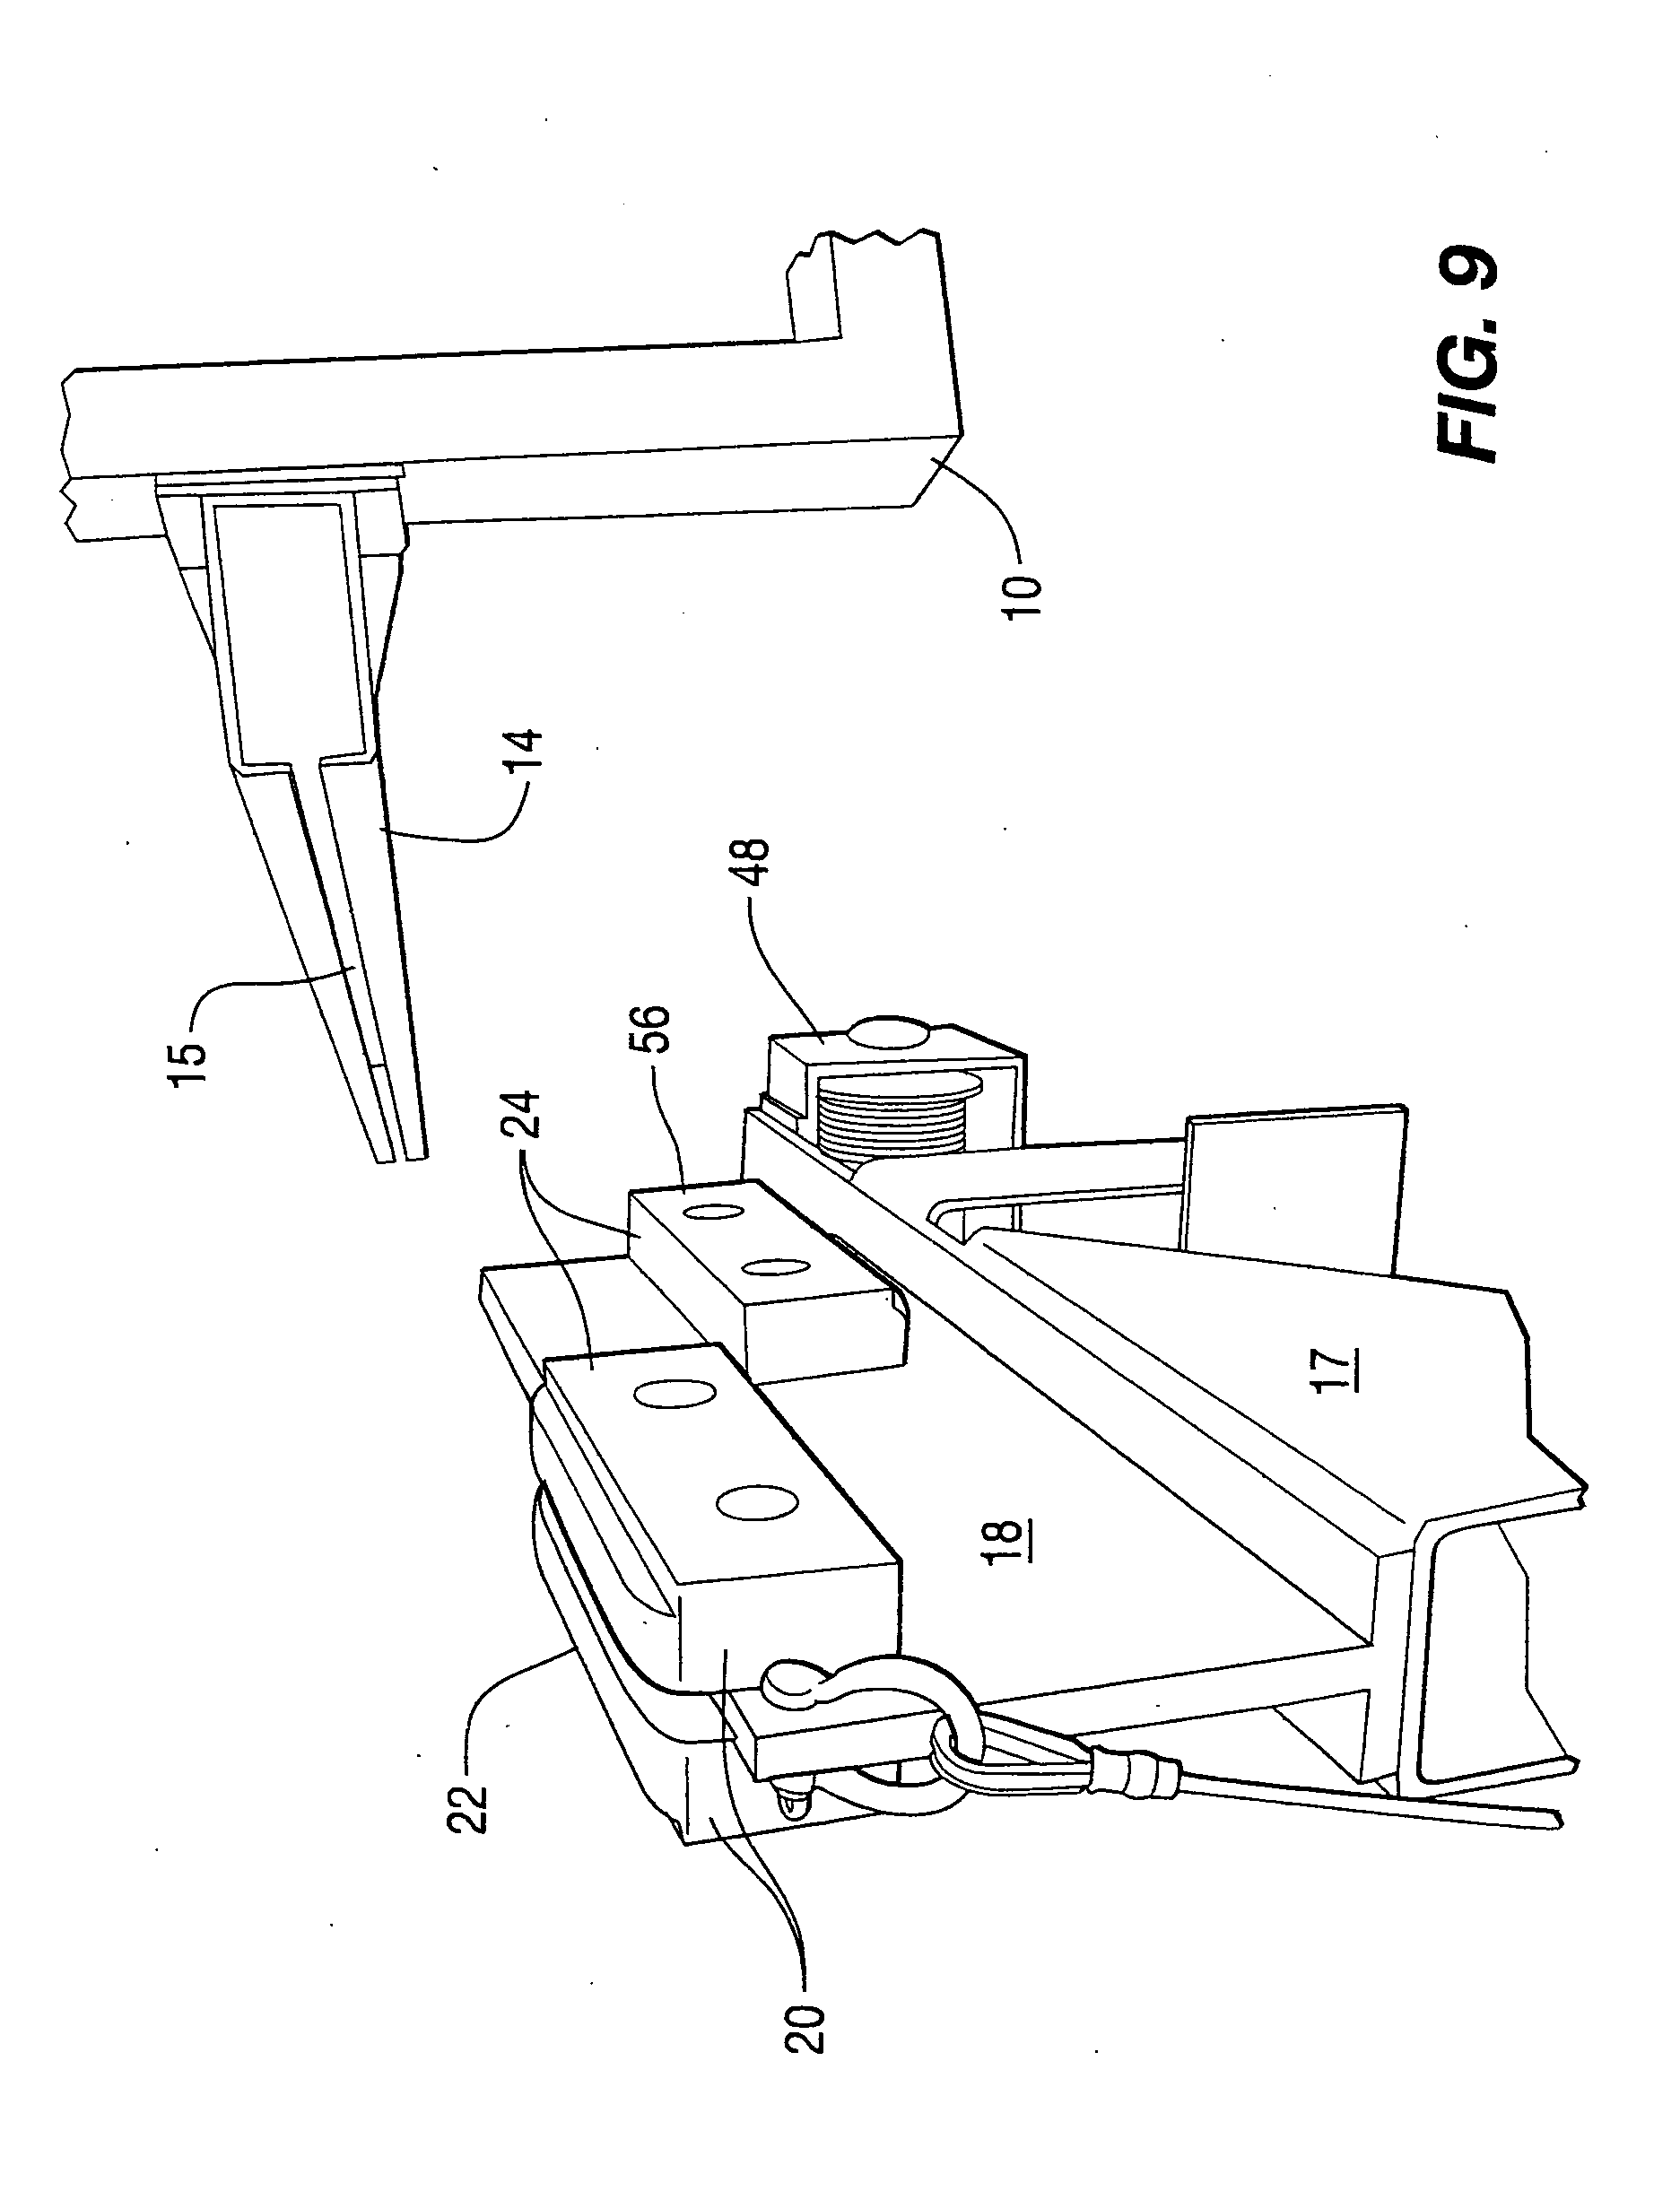 patent us20100104365 rotatable boat lift with sliding pads Hydraulic Valve Schematic Diagram patent drawing